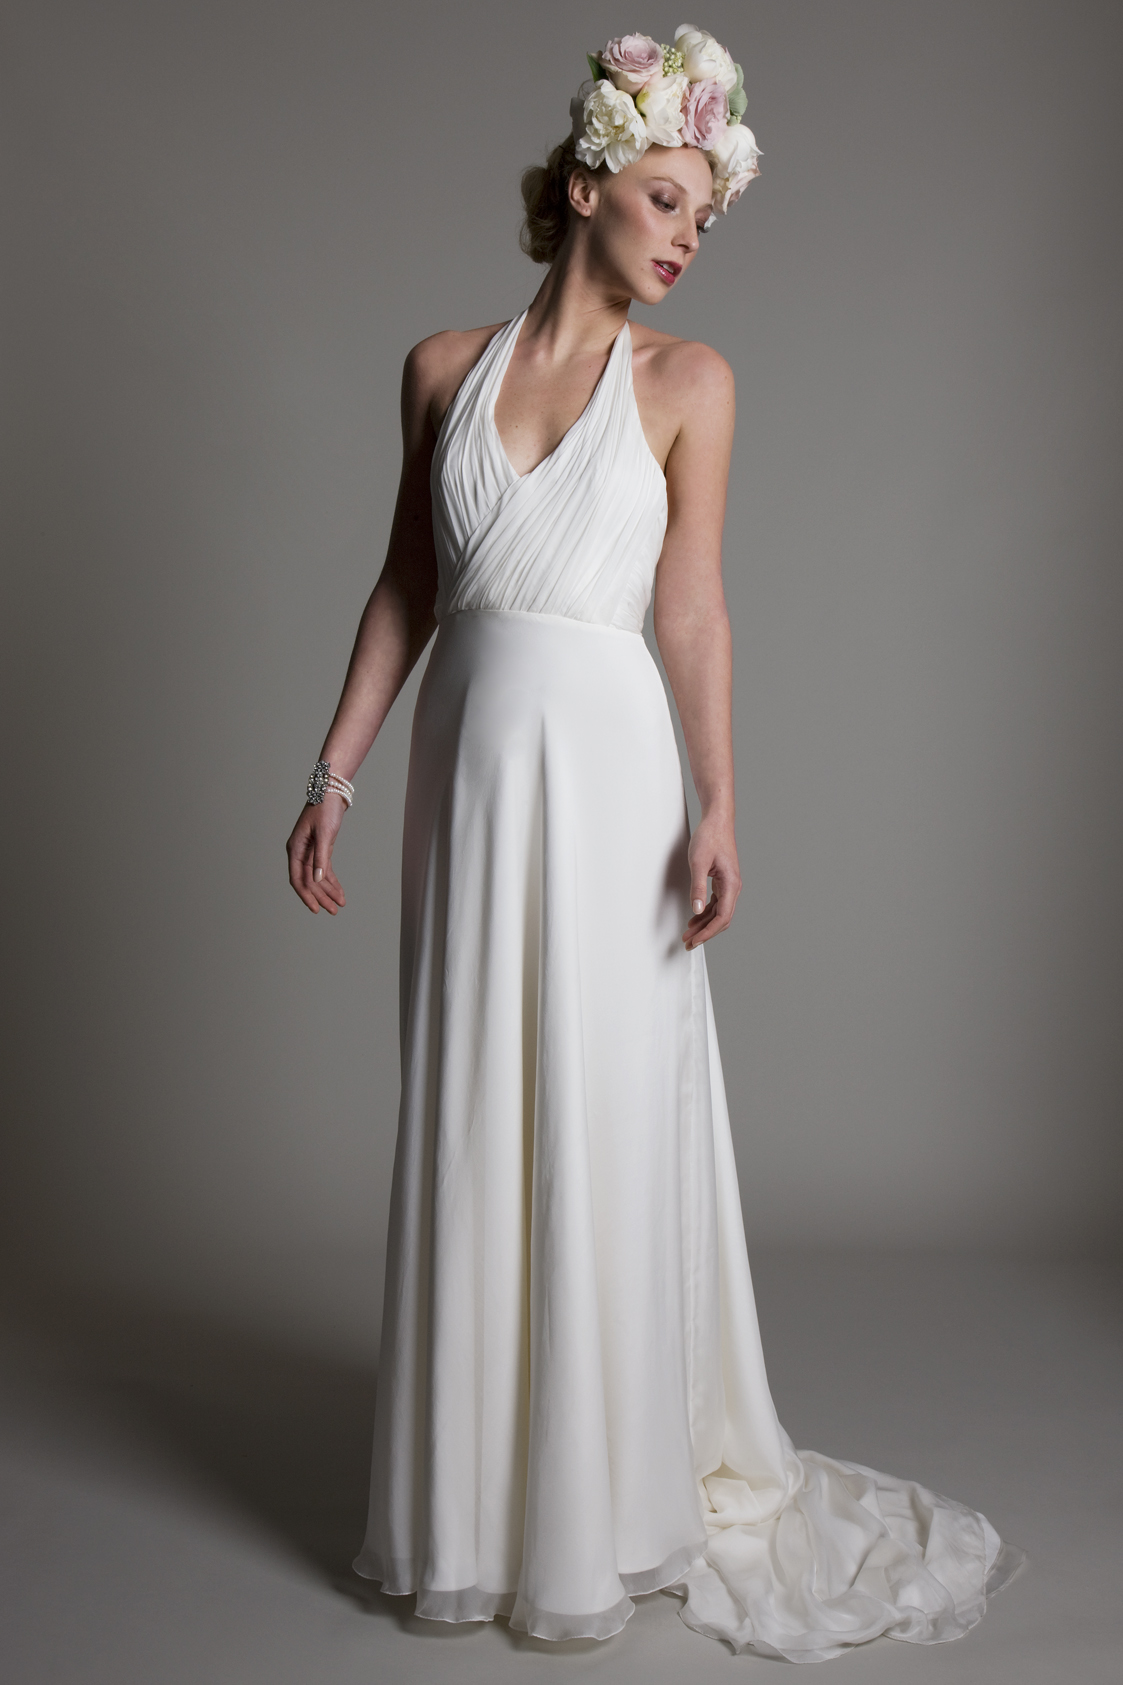 Marilyn halter neck chiffon gathered top with chiffon A line skirt and low back bridal wedding dress by Halfpenny London